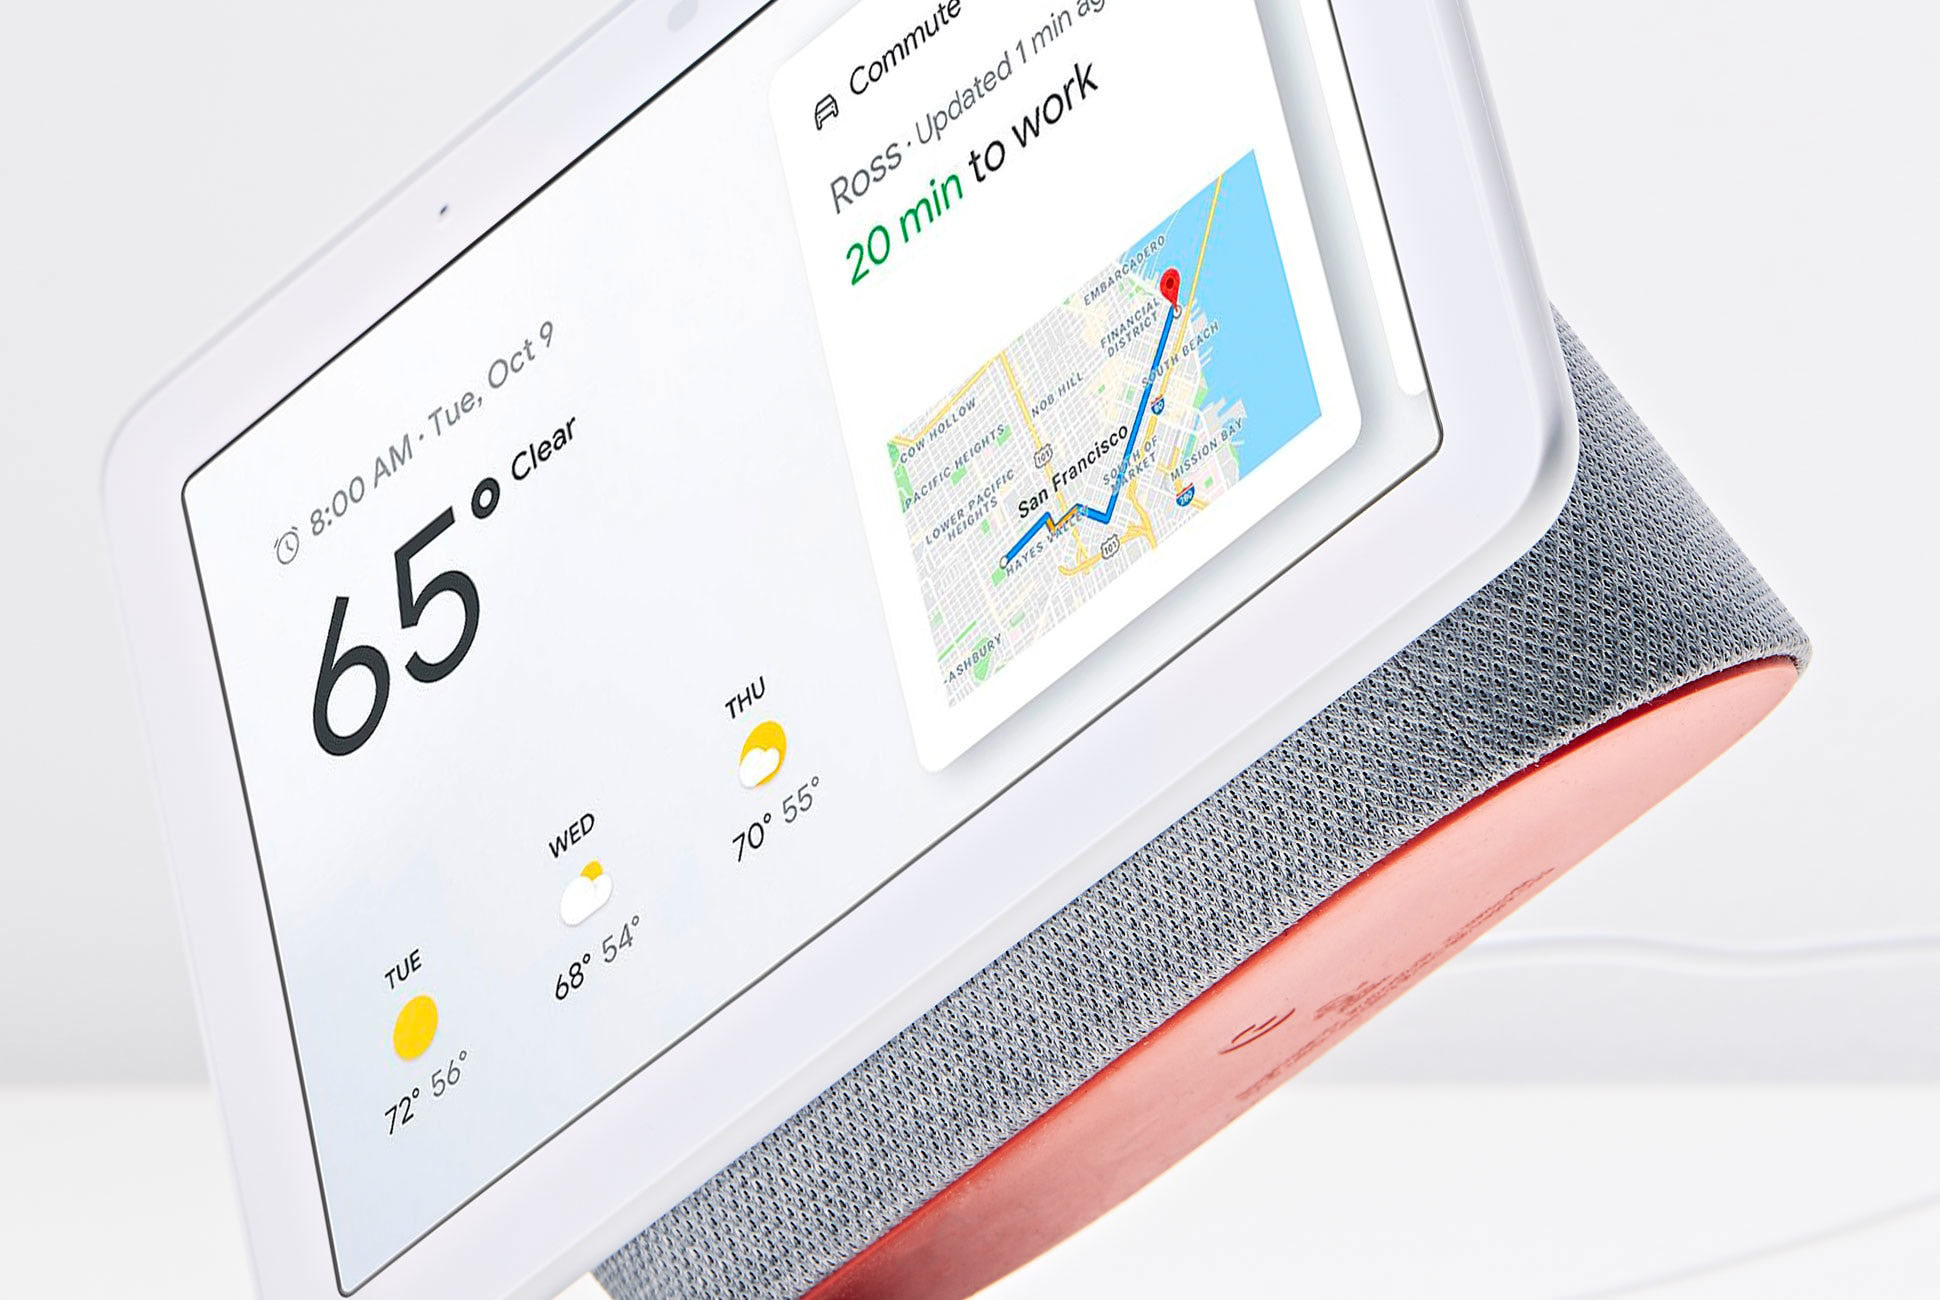 google-home-hub-cp-full.jpg